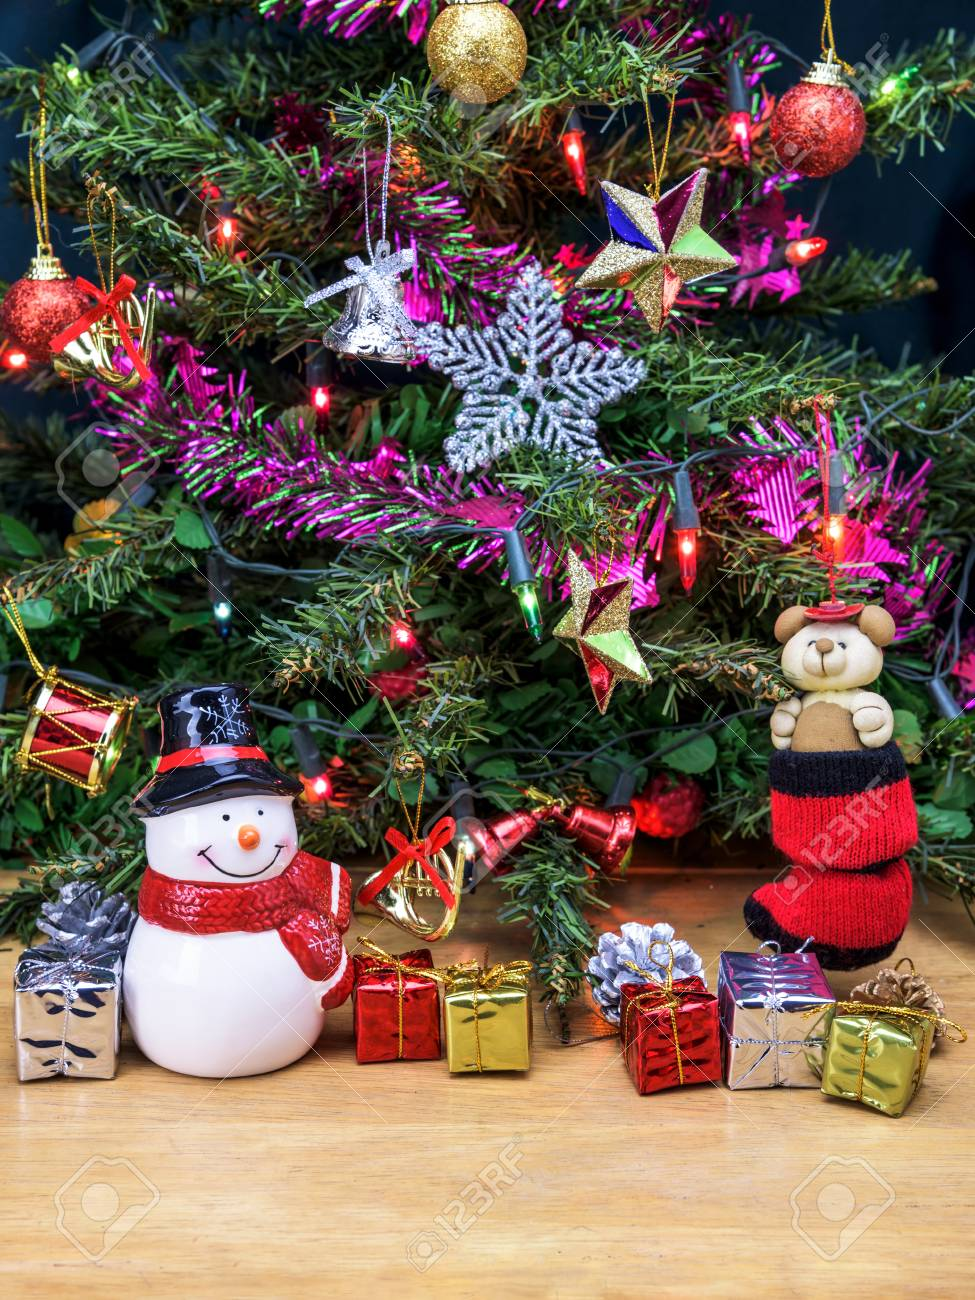 Christmas Tree And Snowman Ceramic Doll With Gift Box And Decorations